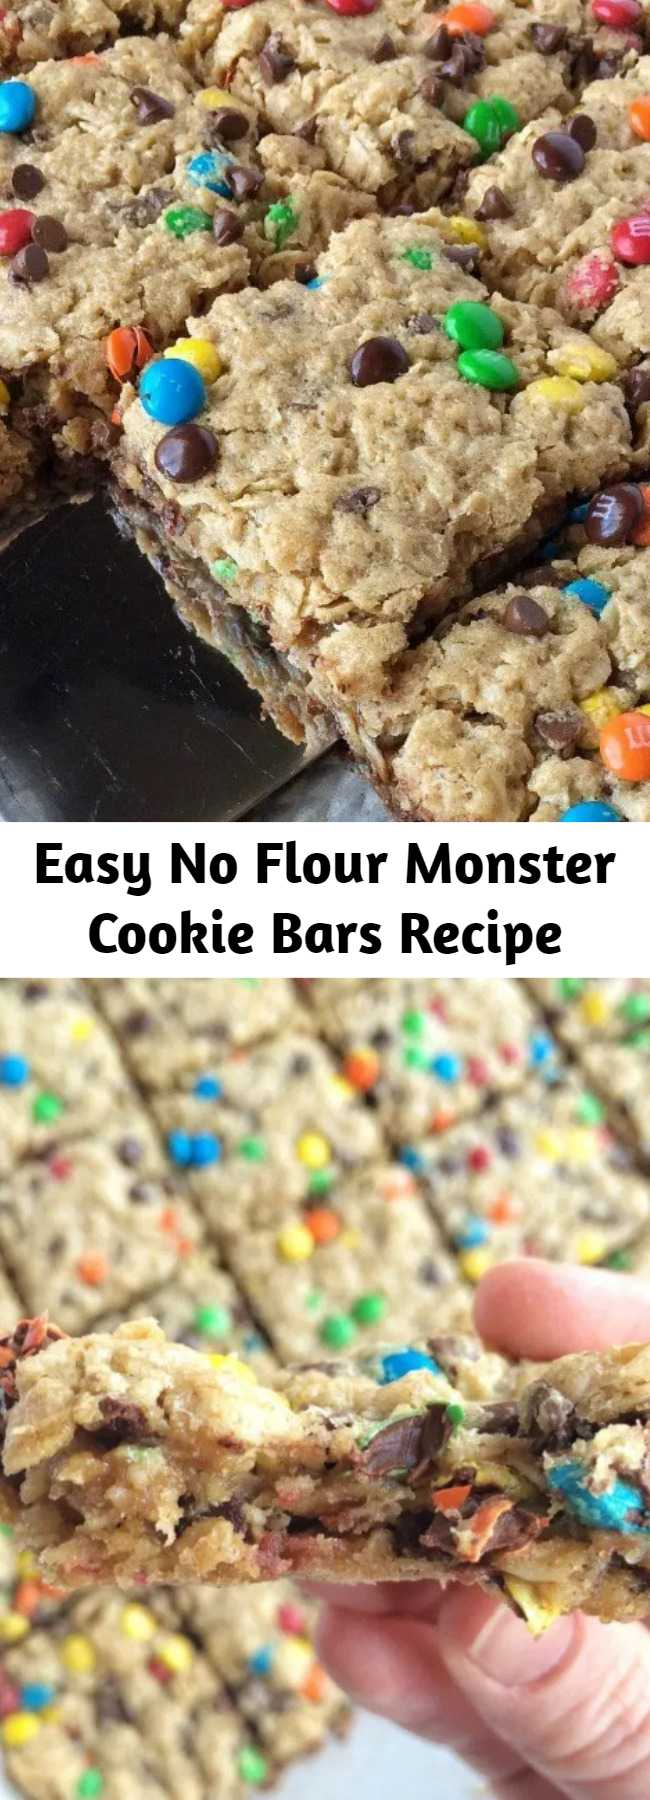 Easy No Flour Monster Cookie Bars Recipe - No flour monster cookie bars are the perfect back-to-school snack! They freeze really well and who can resist these bars loaded with oatmeal, peanut butter, chocolate chips, and m&m's?!